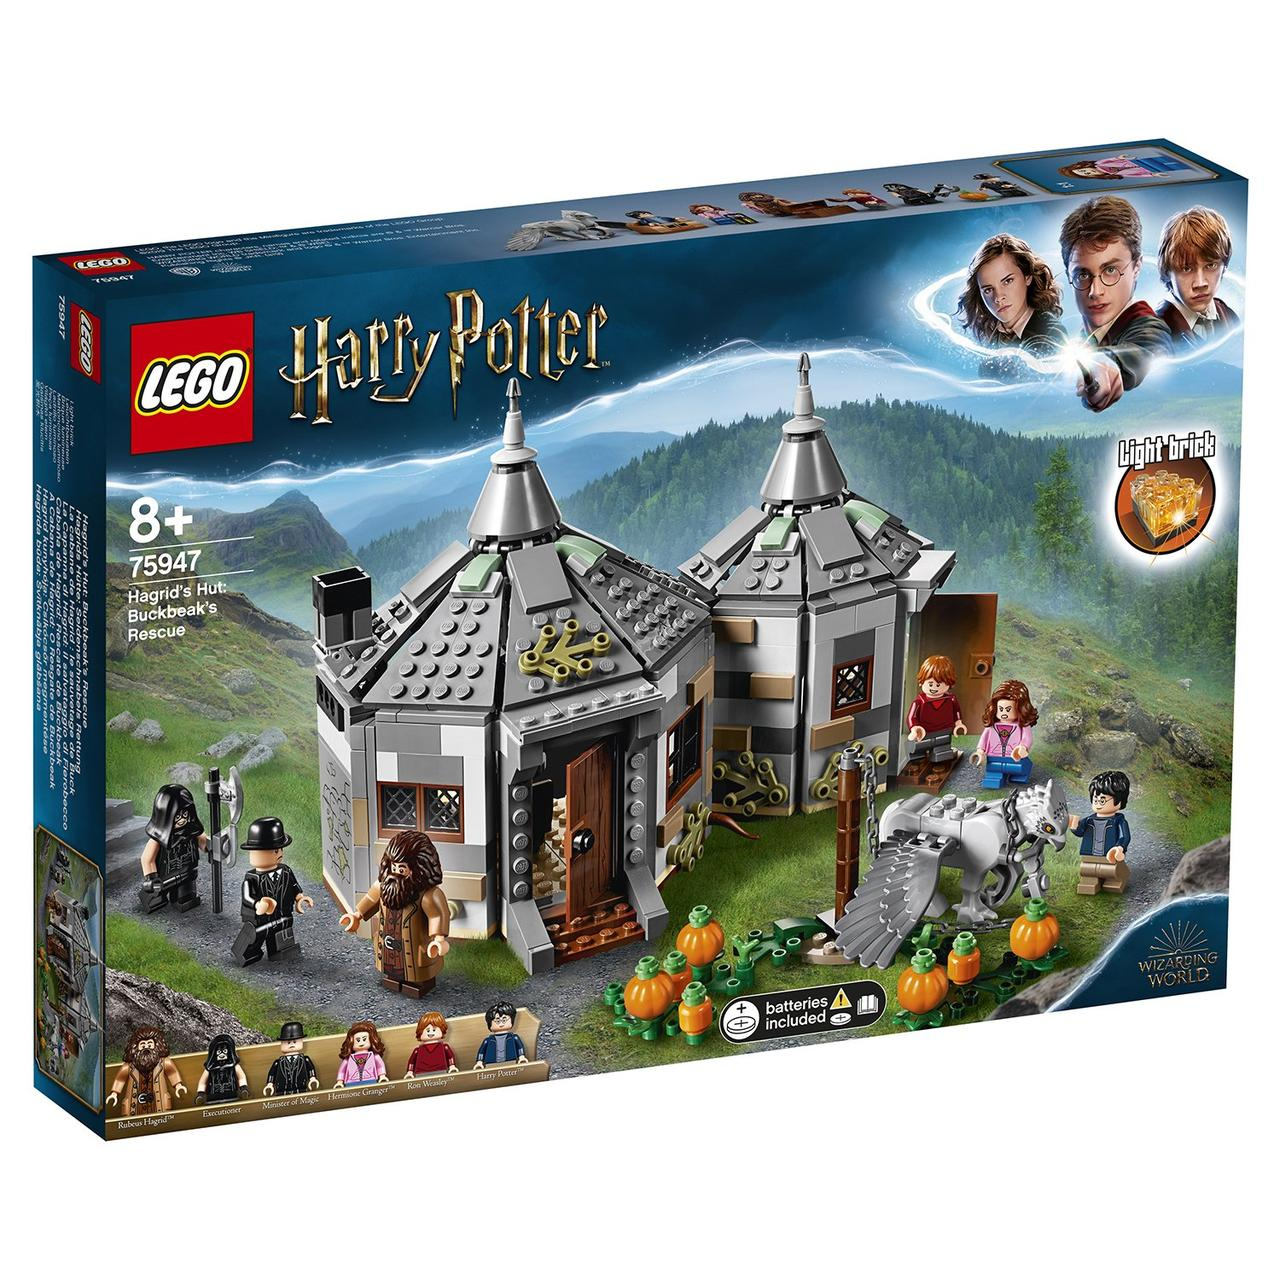 75947 Lego Harry Potter Хижина Хагрида: спасение Клювокрыла, Лего Гарри Поттер